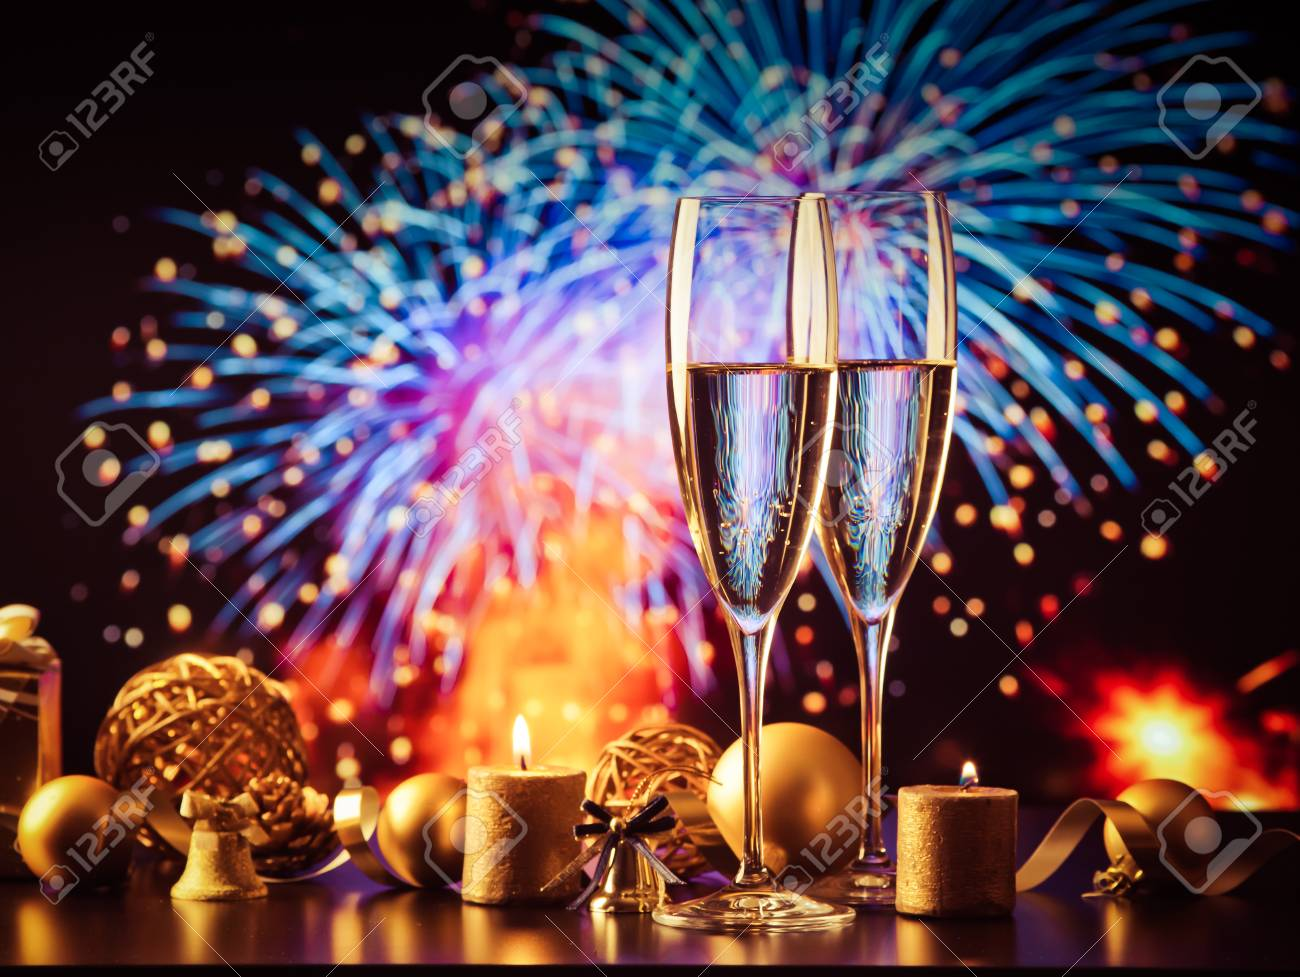 two champagne glasses against holiday lights and fireworks - new year celebration - 89395043